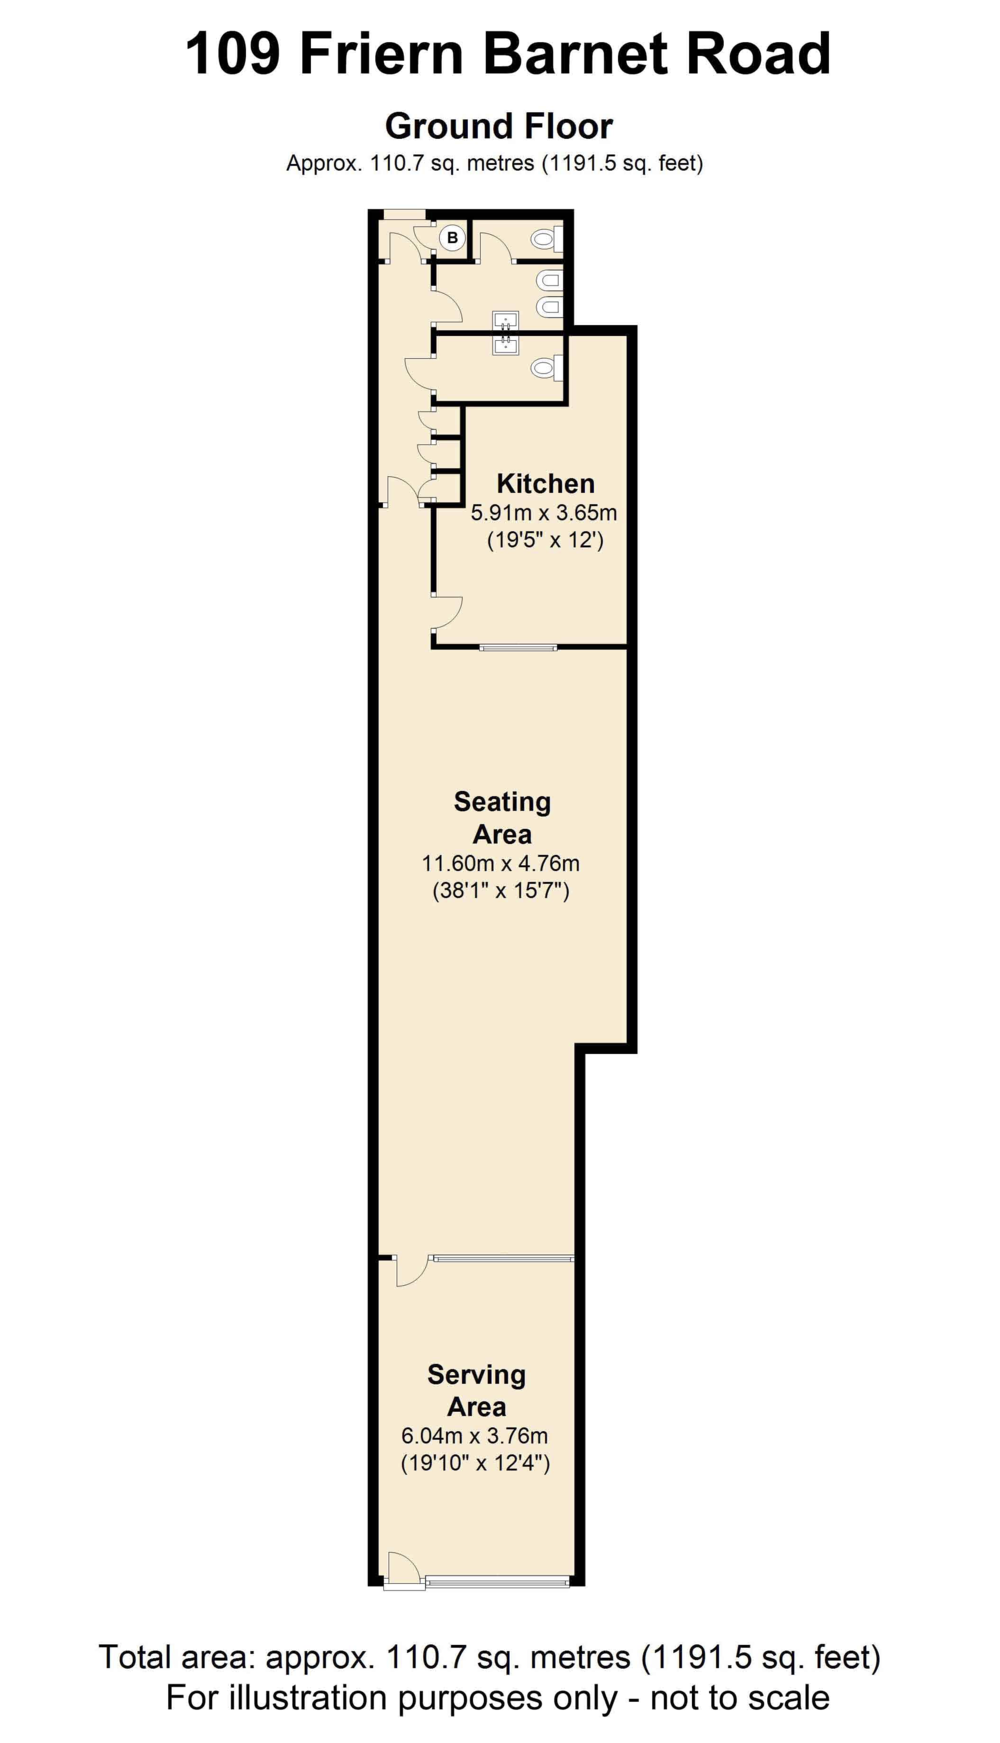 109 Friern Barnet Rd - Floorplan.png